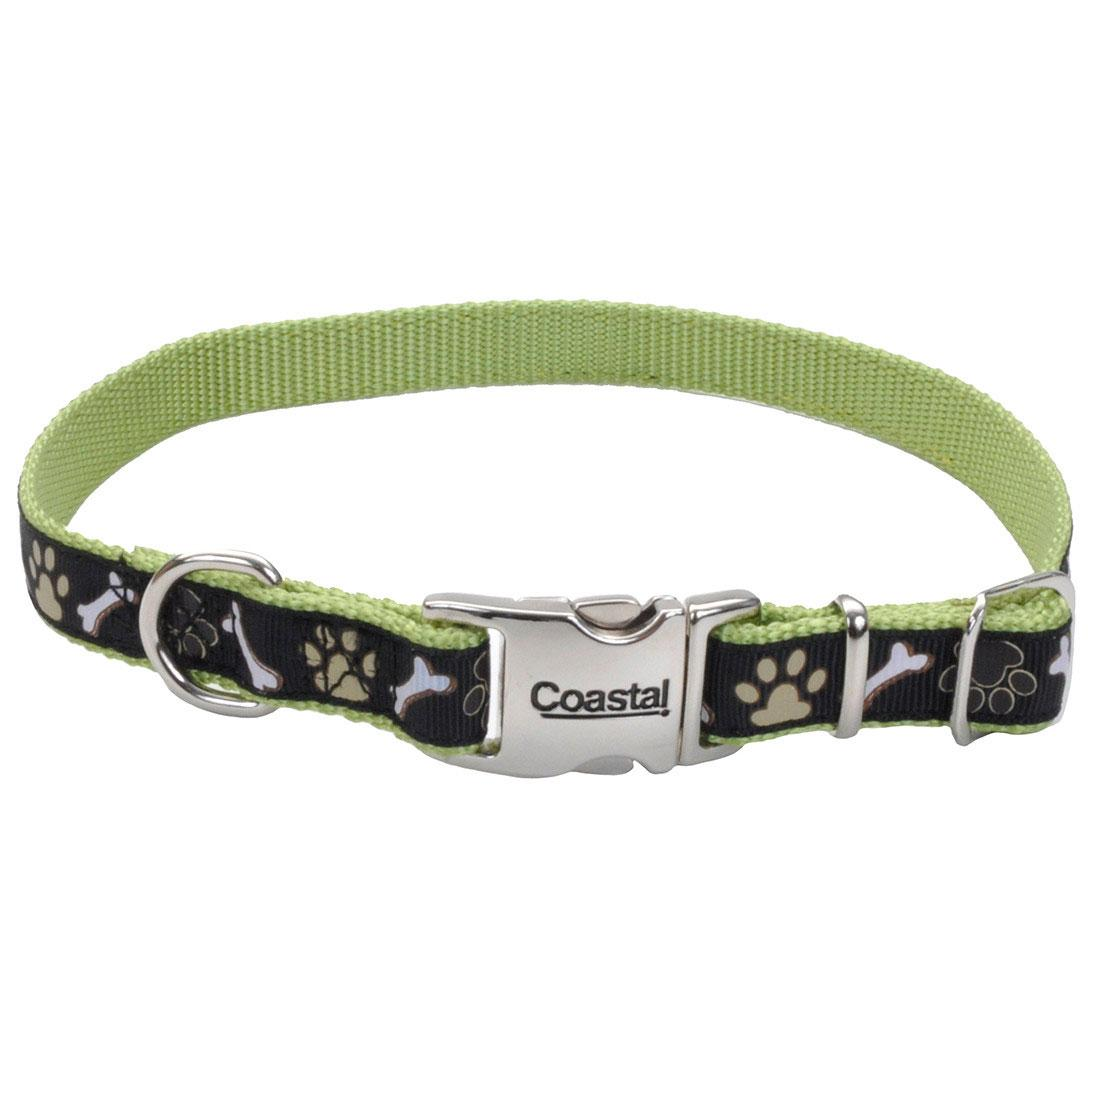 Ribbon Adjustable Collar with Metal Buckle for Dogs, Brown Paws & Bones, 5/8-in x 12-18-in